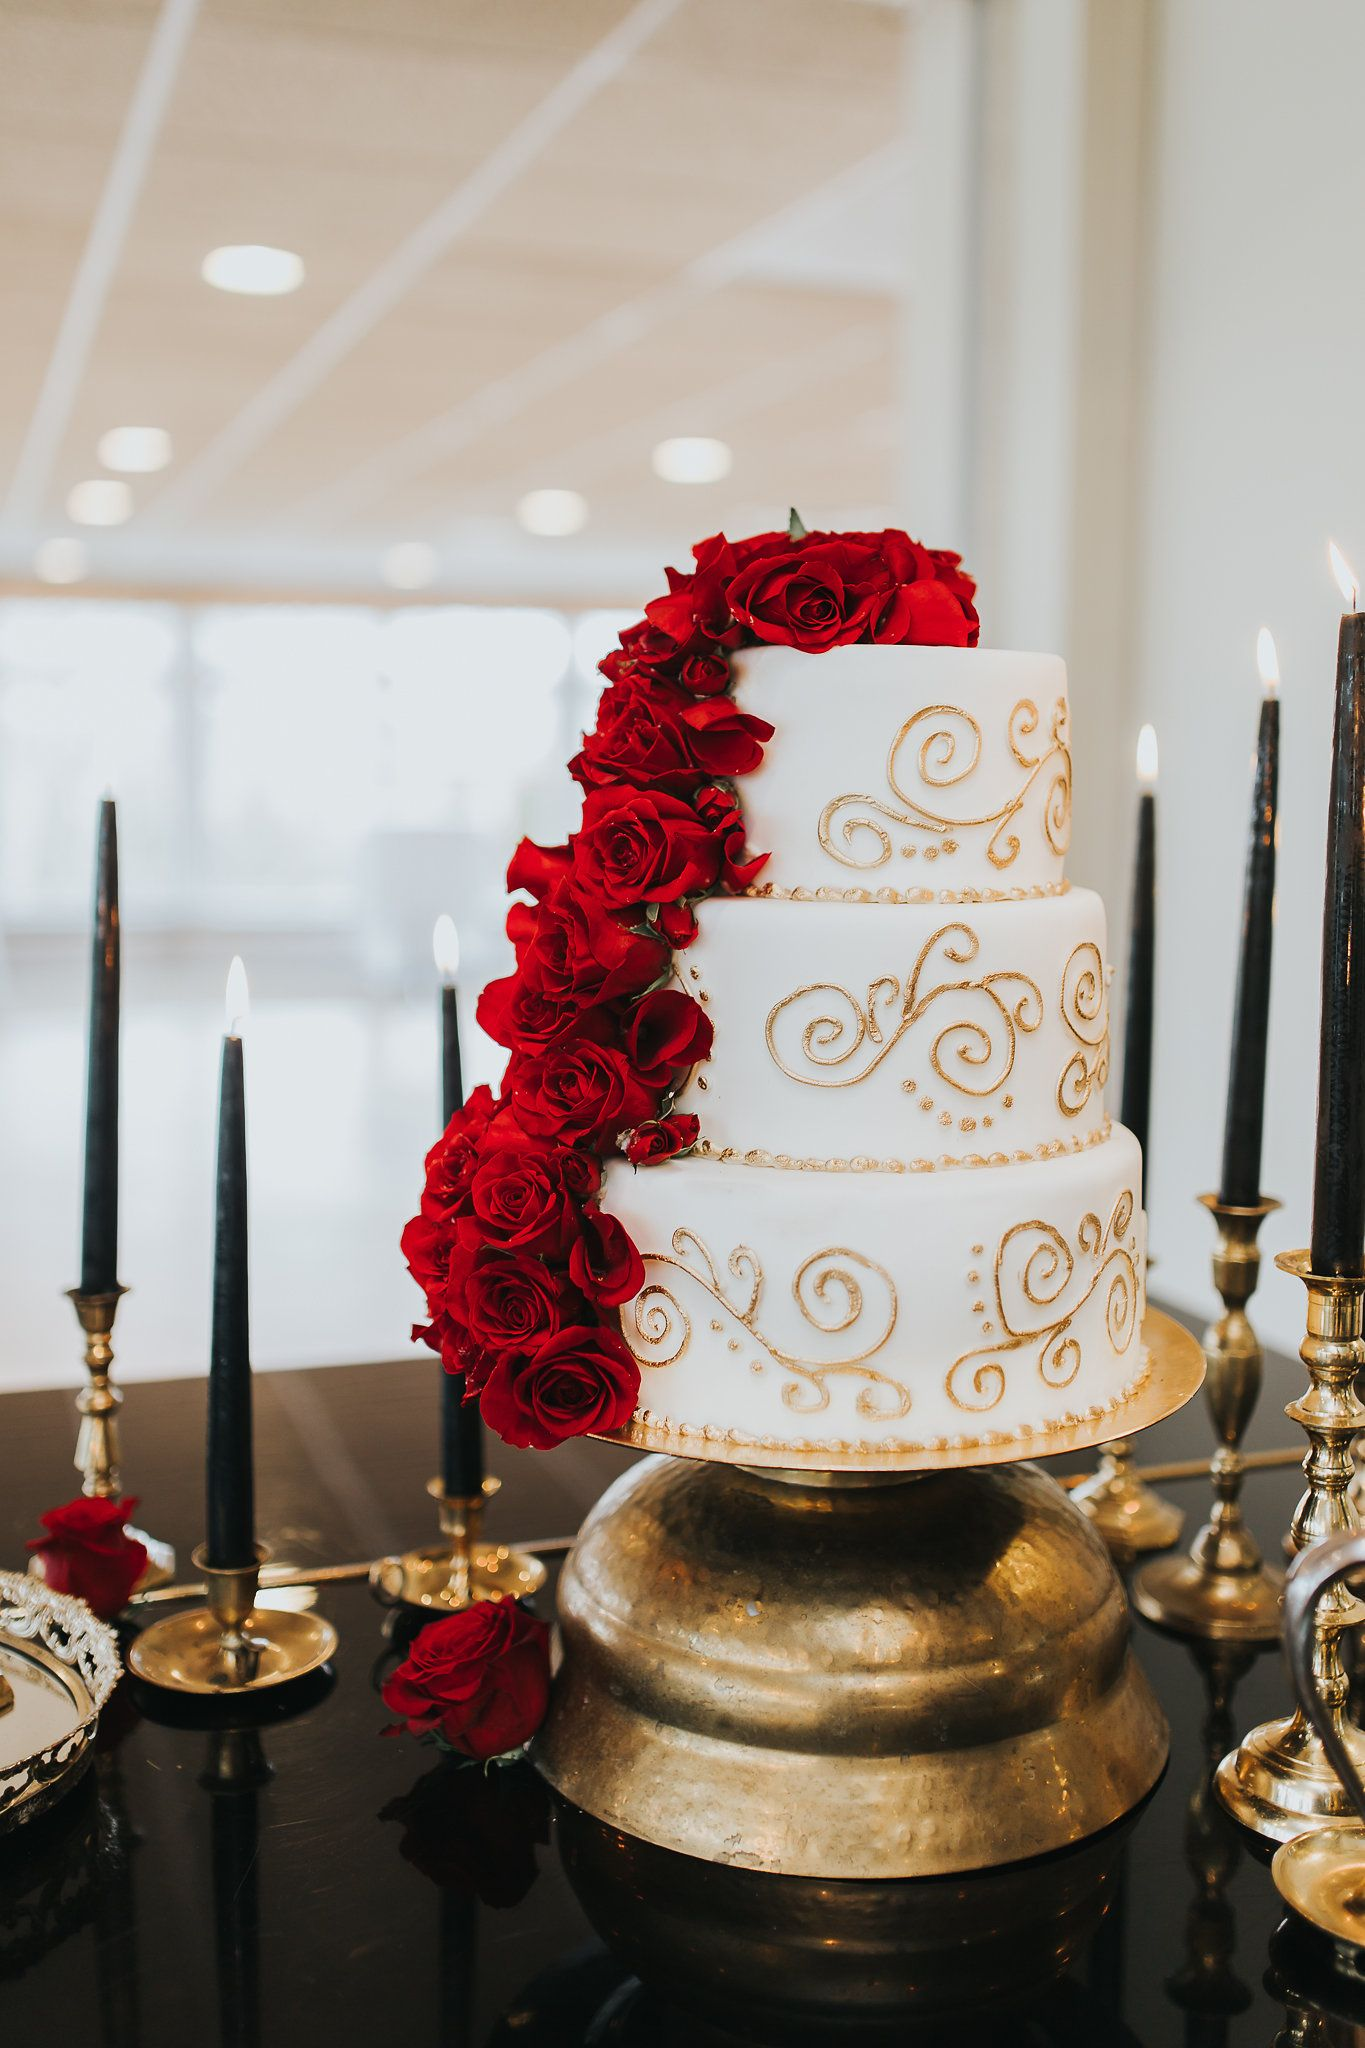 Wedding Inspiration: Beauty & the Beast | Pinterest | Red roses ...